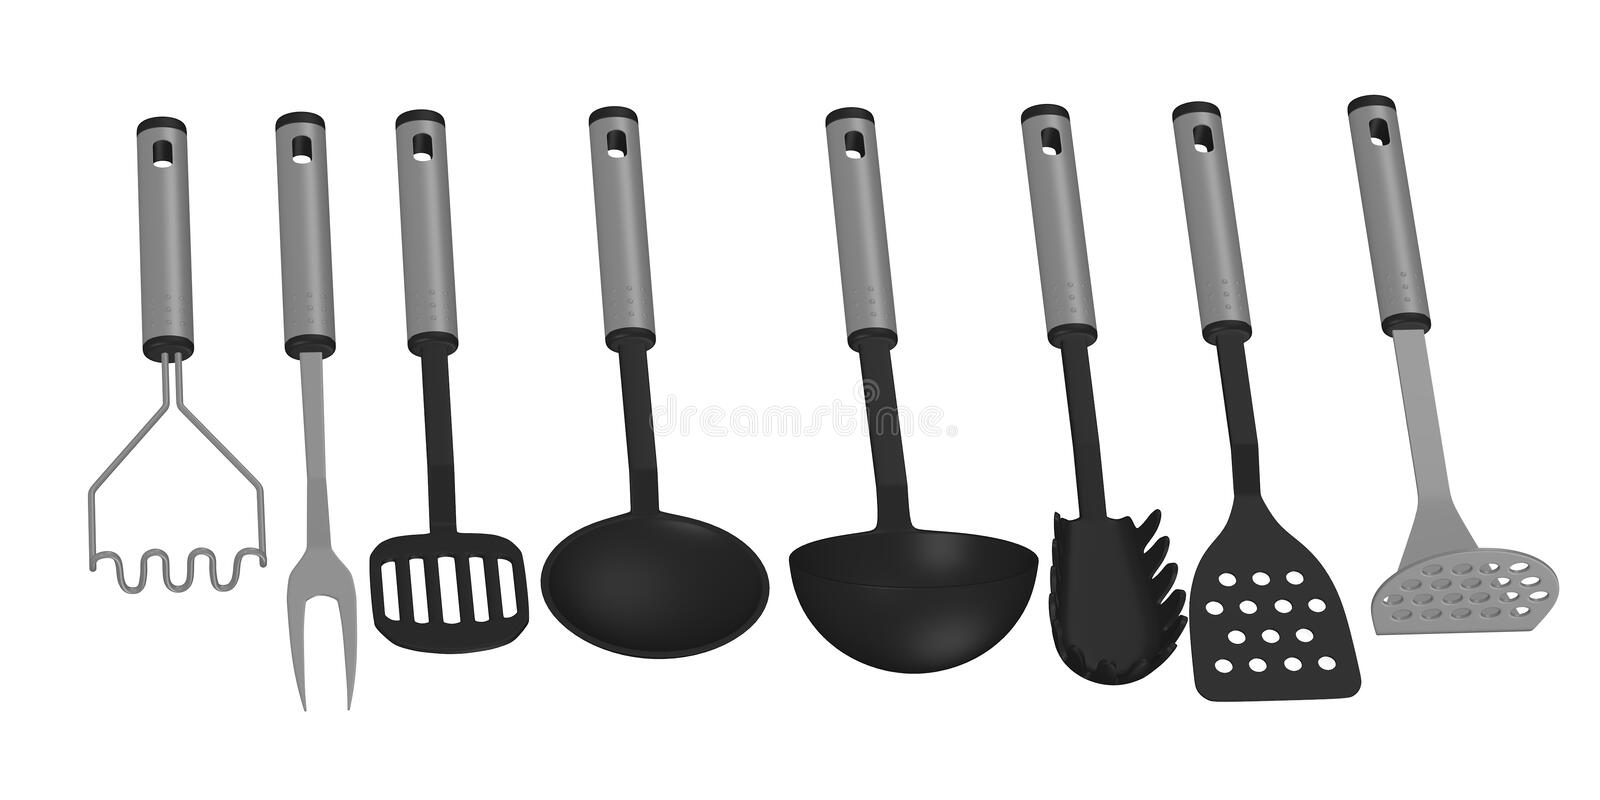 8 kitchen utensils